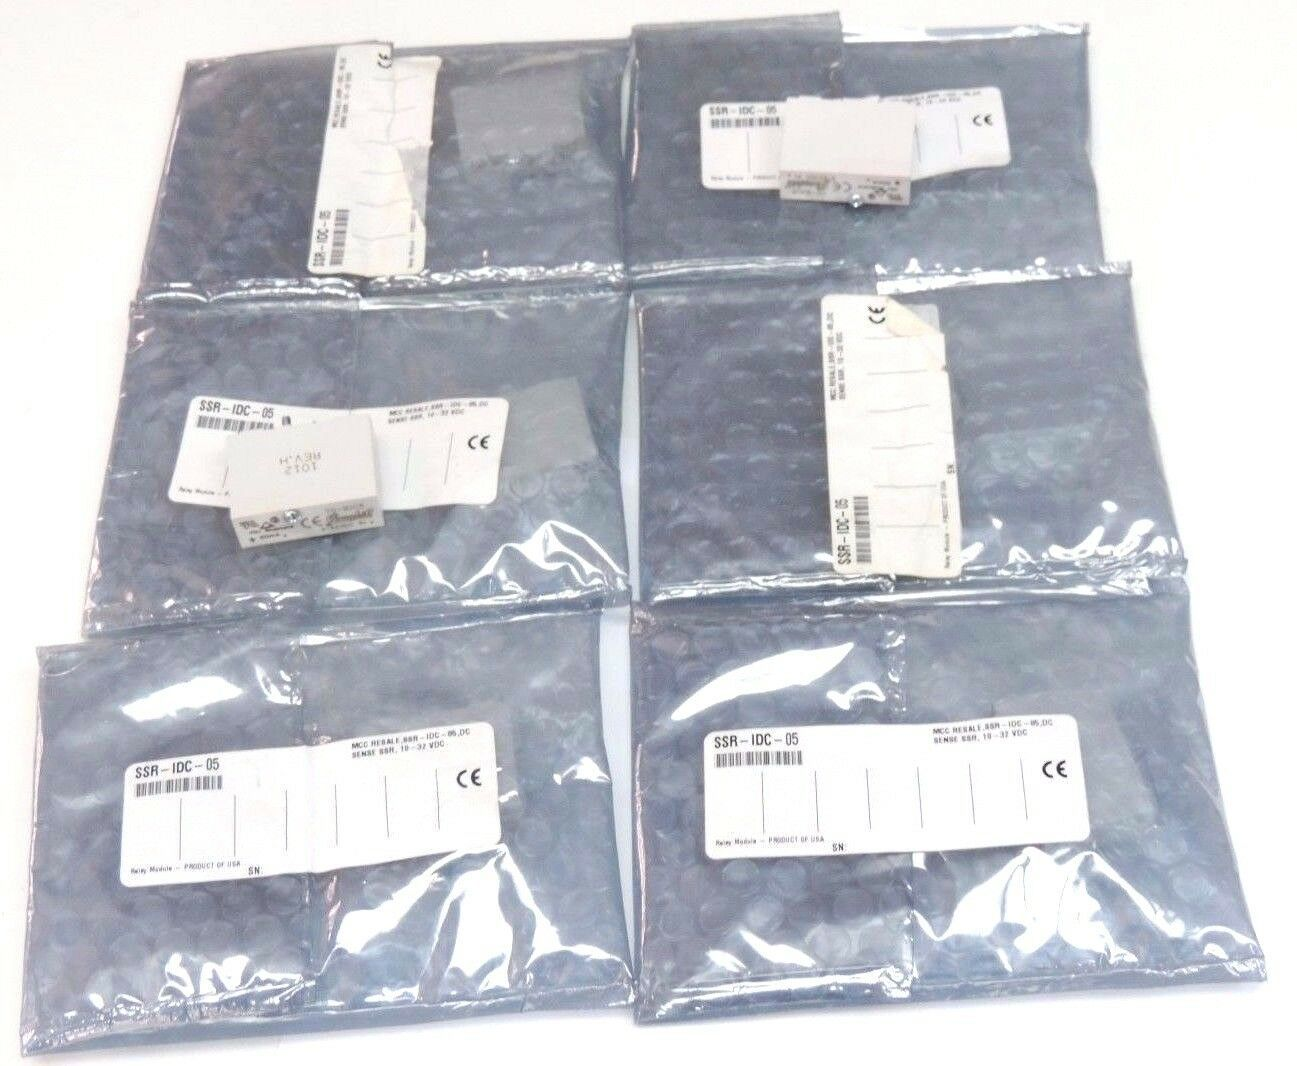 LOT OF 6 NEW GRAYHILL 70-IDC5 I/O MODULES 70IDC5, 50mA, 3-32VDC